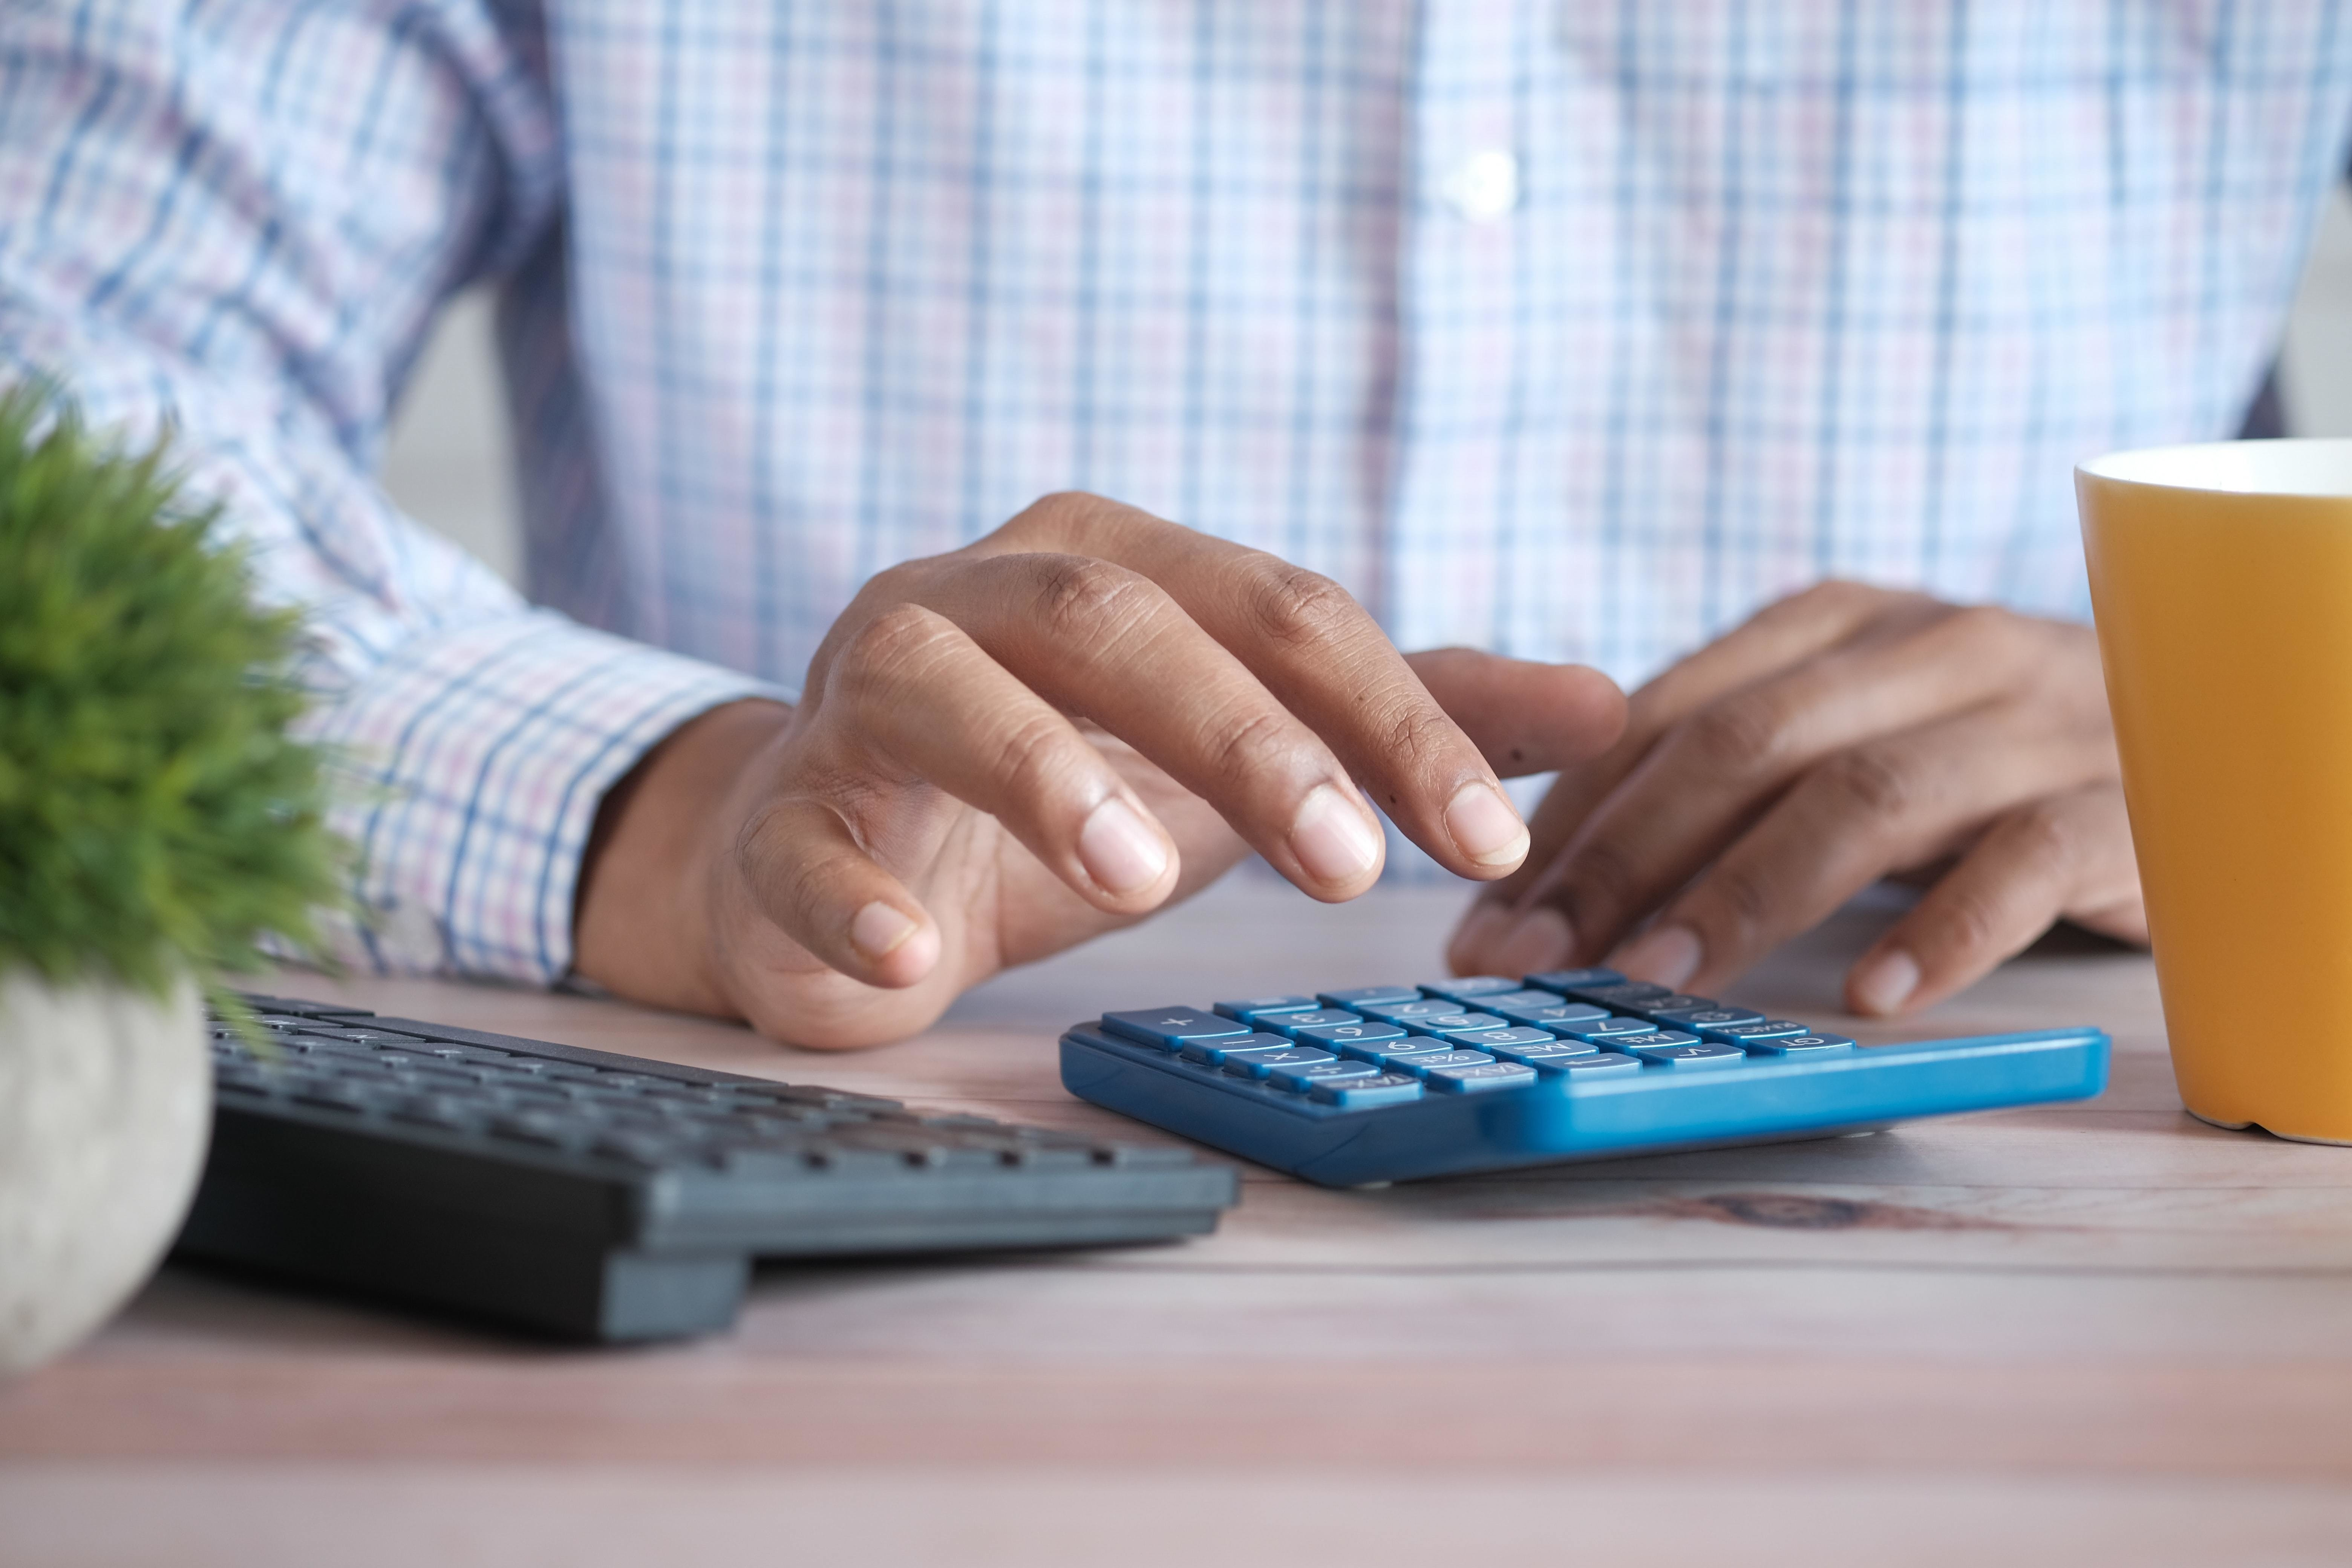 this is someone calculating tax. Countries accounting for 90% of the global economy have agreed to set a minimum corporate tax rate